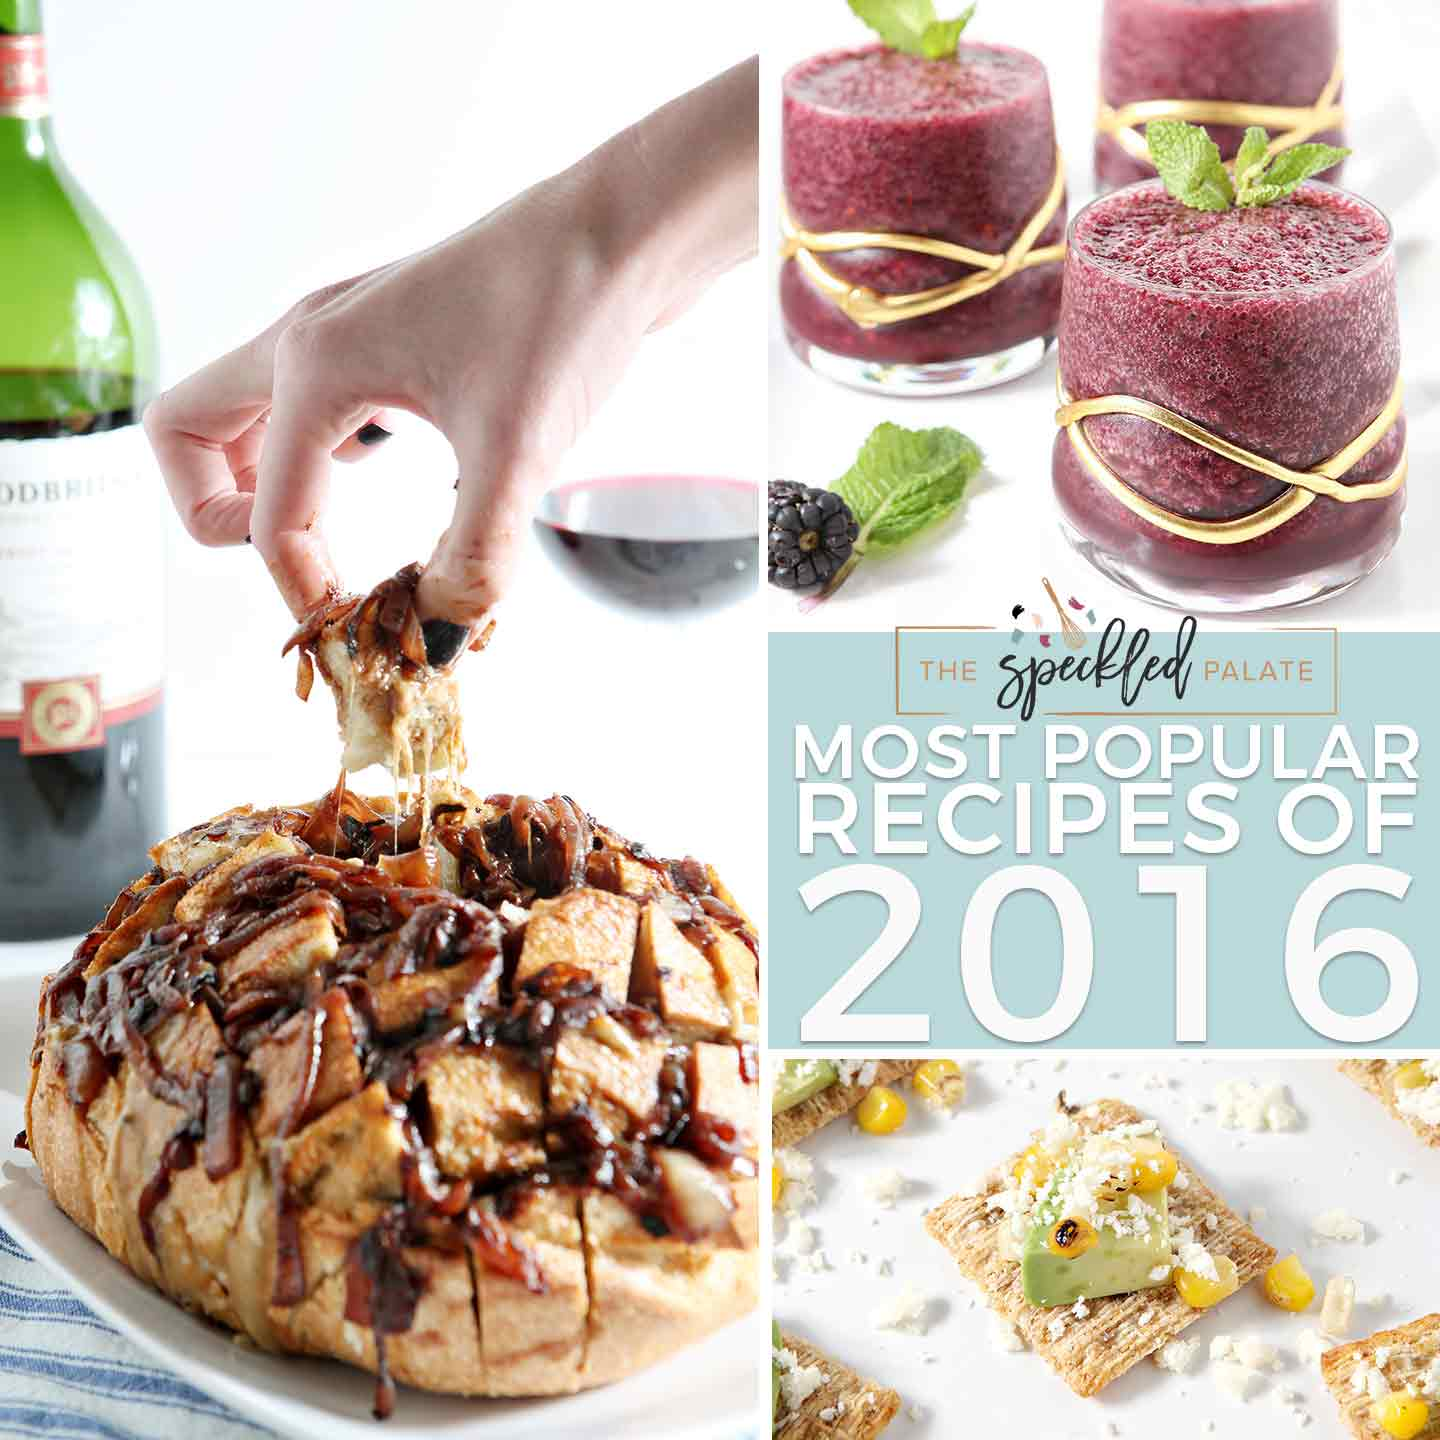 A look back at the last 366 days, The Best of The Speckled Palate 2016 remembers the most popular posts of the year and looks forward to 2017. What was your favorite recipe of 2016? What would you like to see in 2017? Tell me today, and be sure to come back soon for new, exciting recipes to kick off this new year.